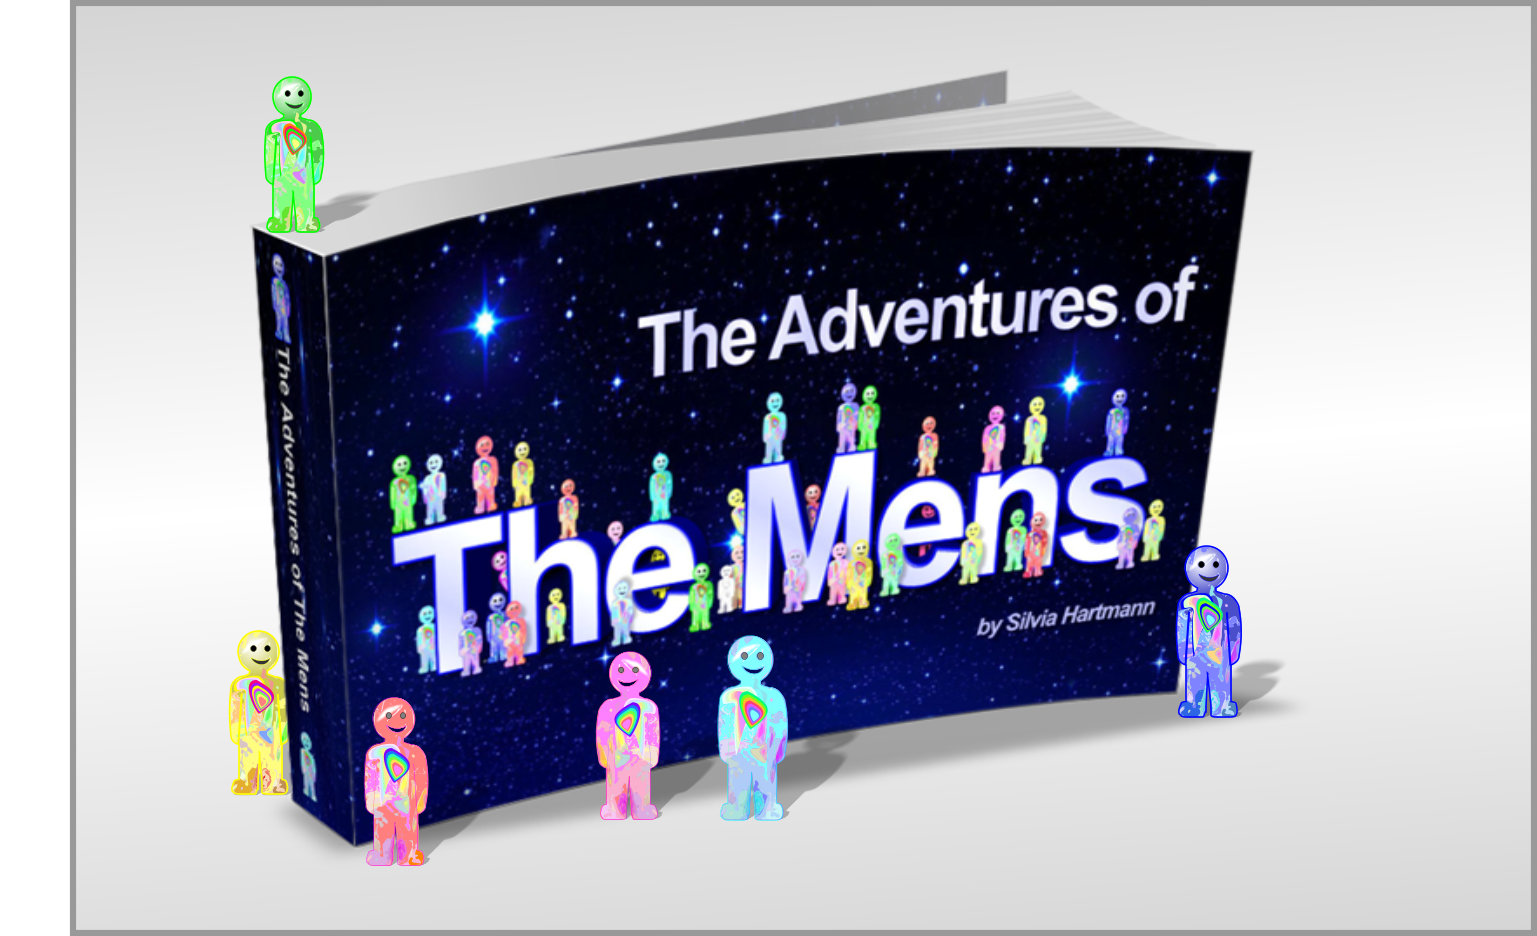 The Mens Bookcover of free kids book by Silvia Hartmann